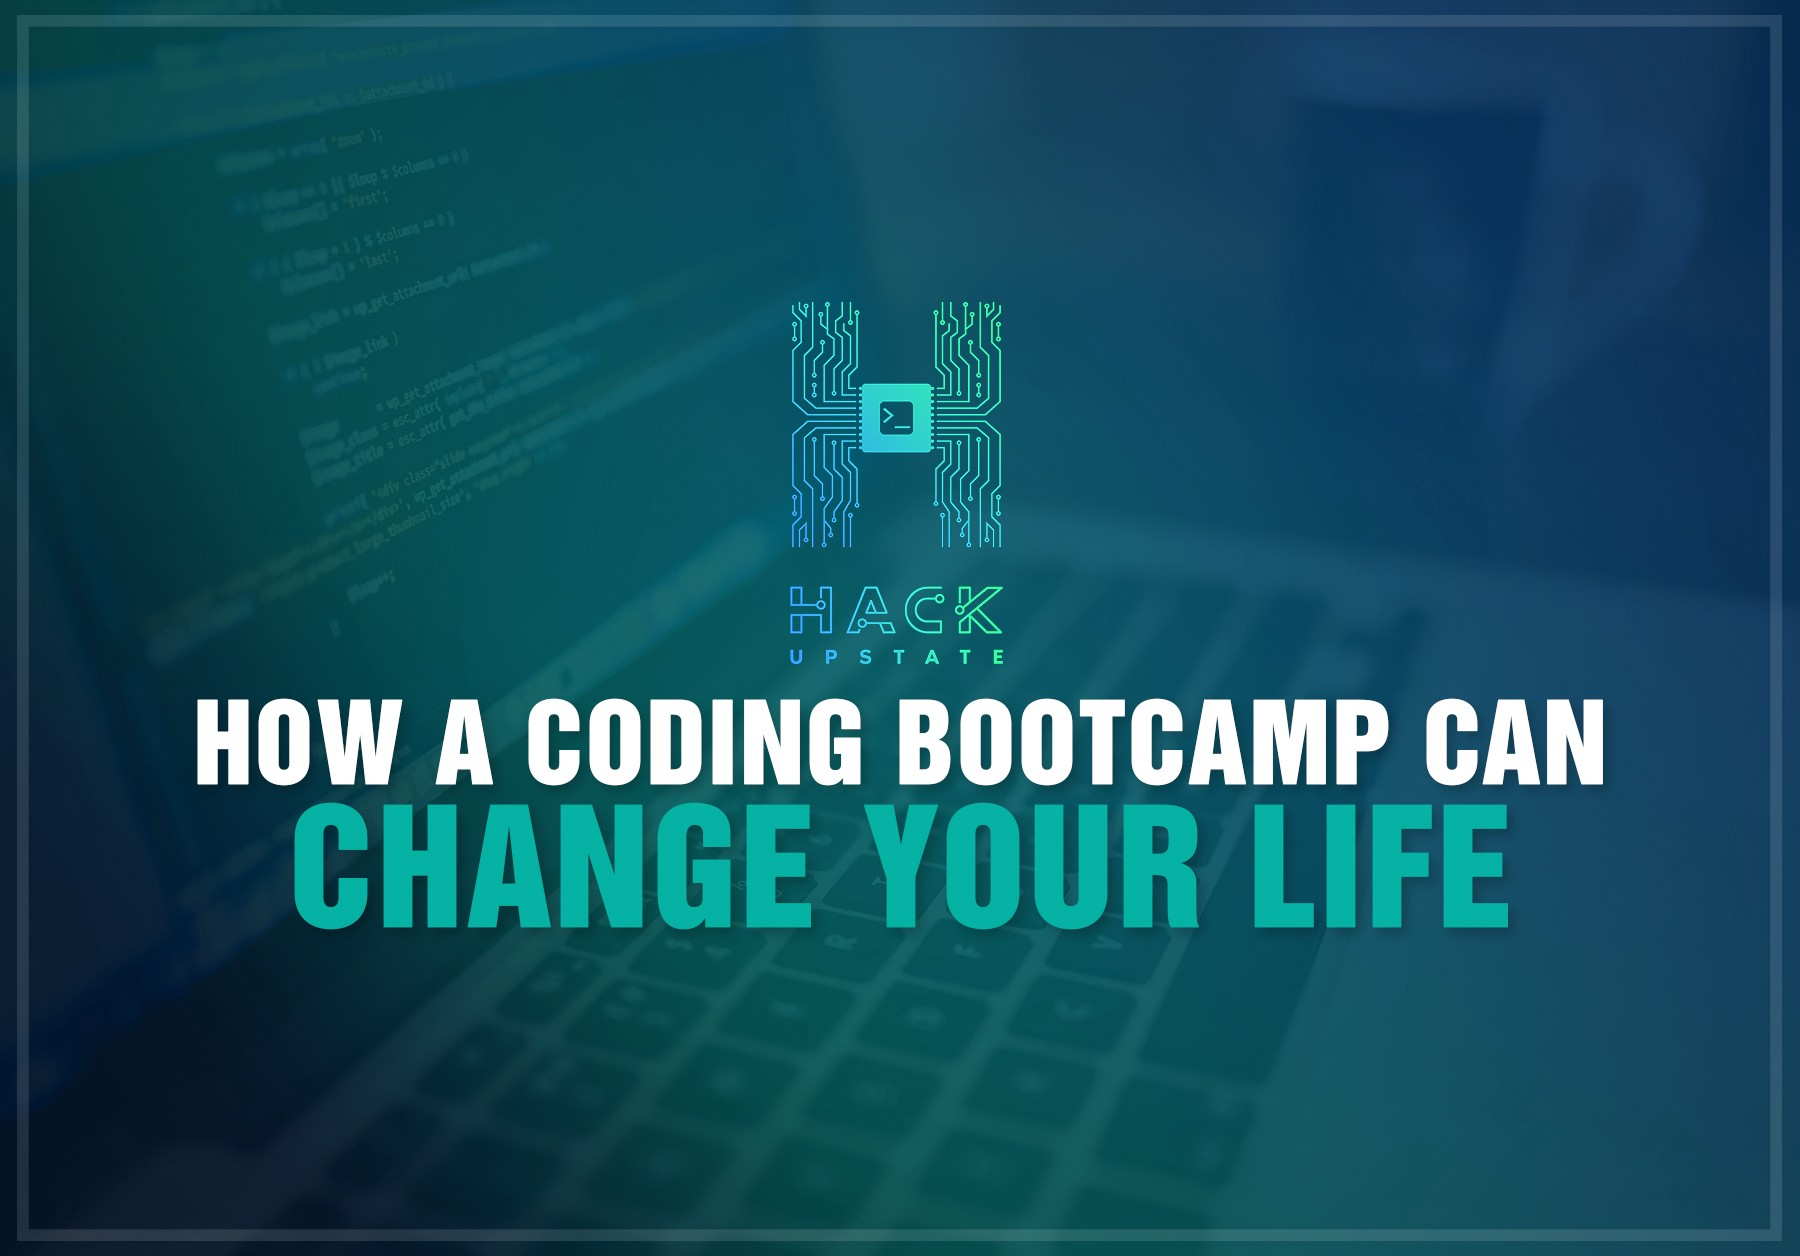 How a Coding Bootcamp Can Change Your Life - Hack Upstate - Medium